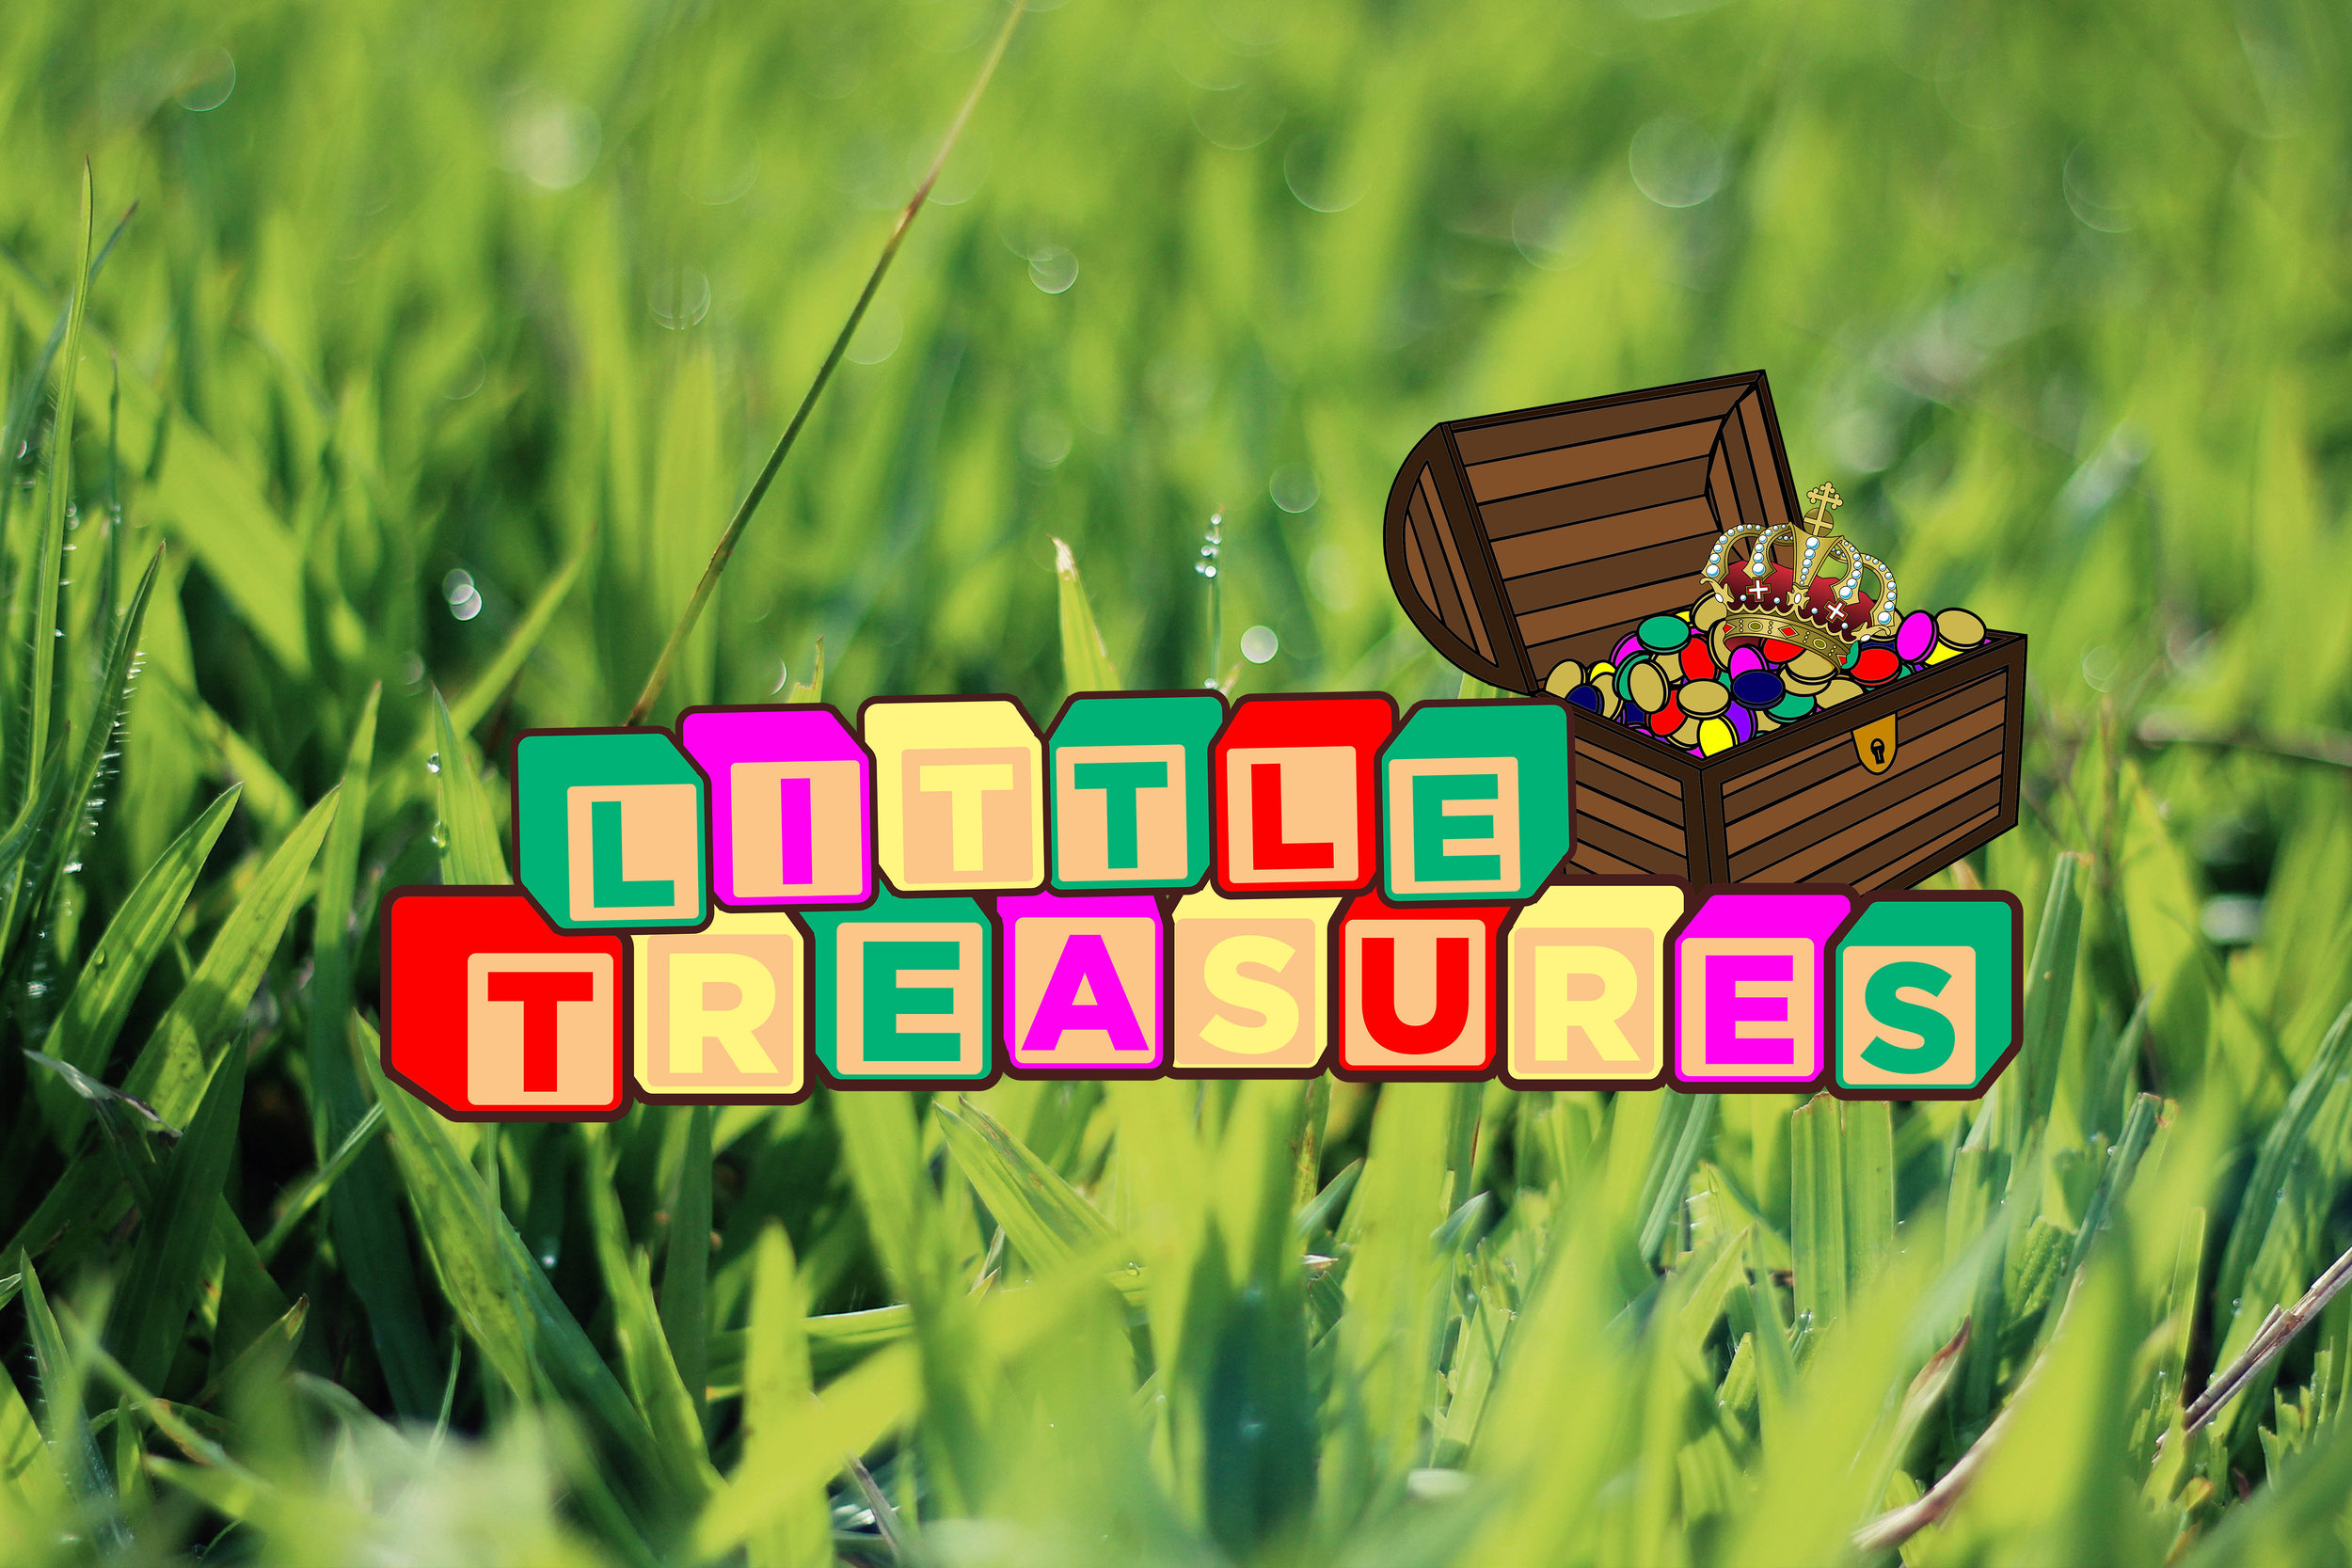 littletreasures.jpg